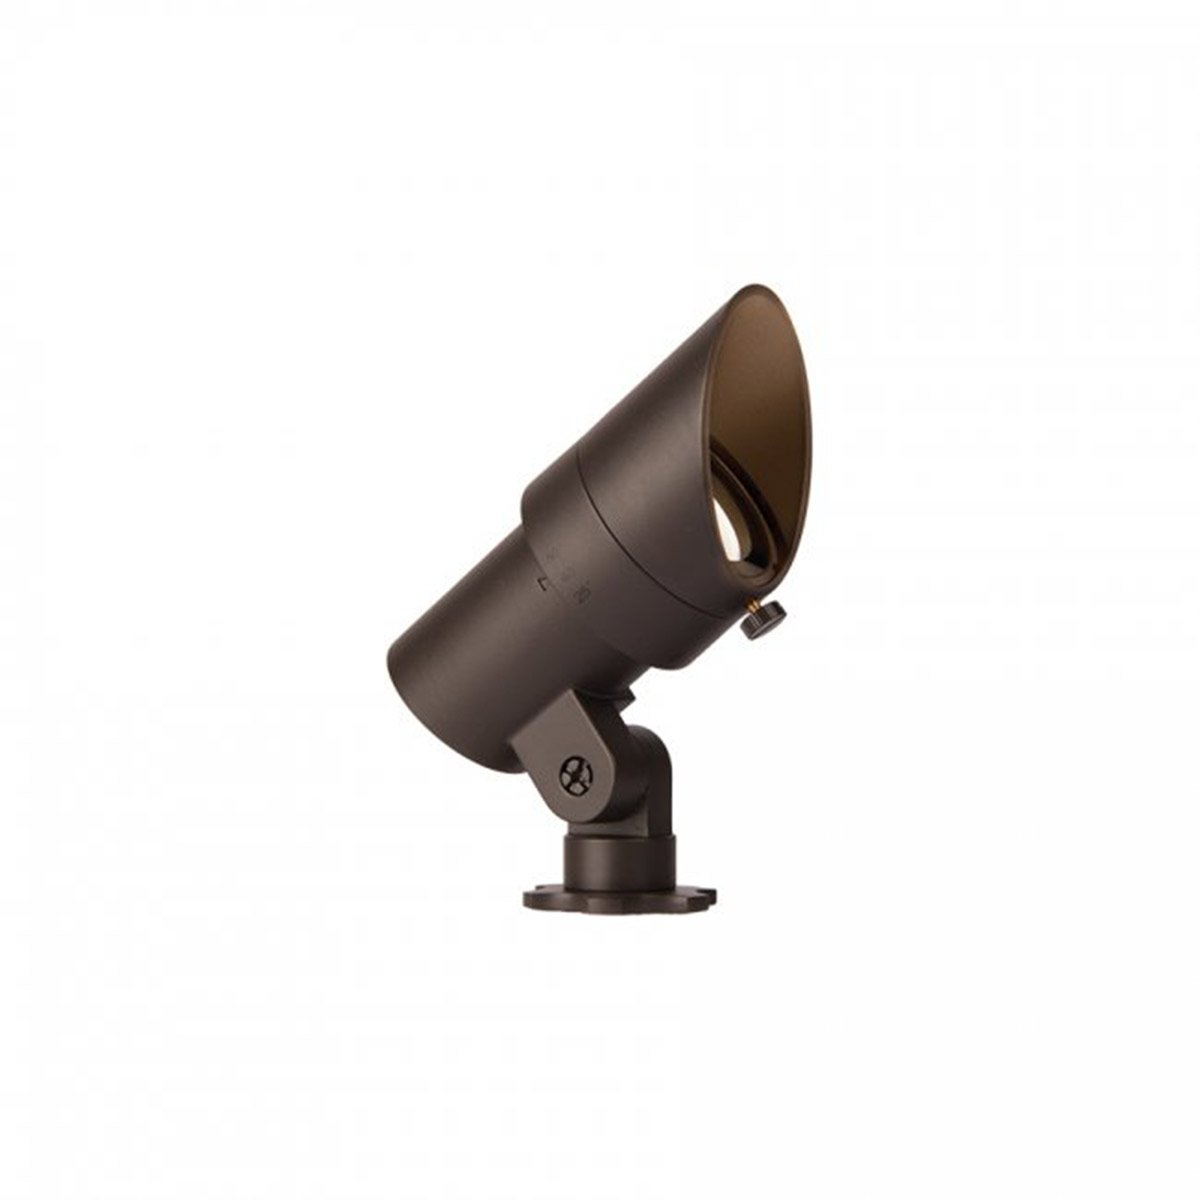 WAC Lighting Wac Landscape 5111-27BZ LED 12V Mini Accent Finish 2700K, Bronze